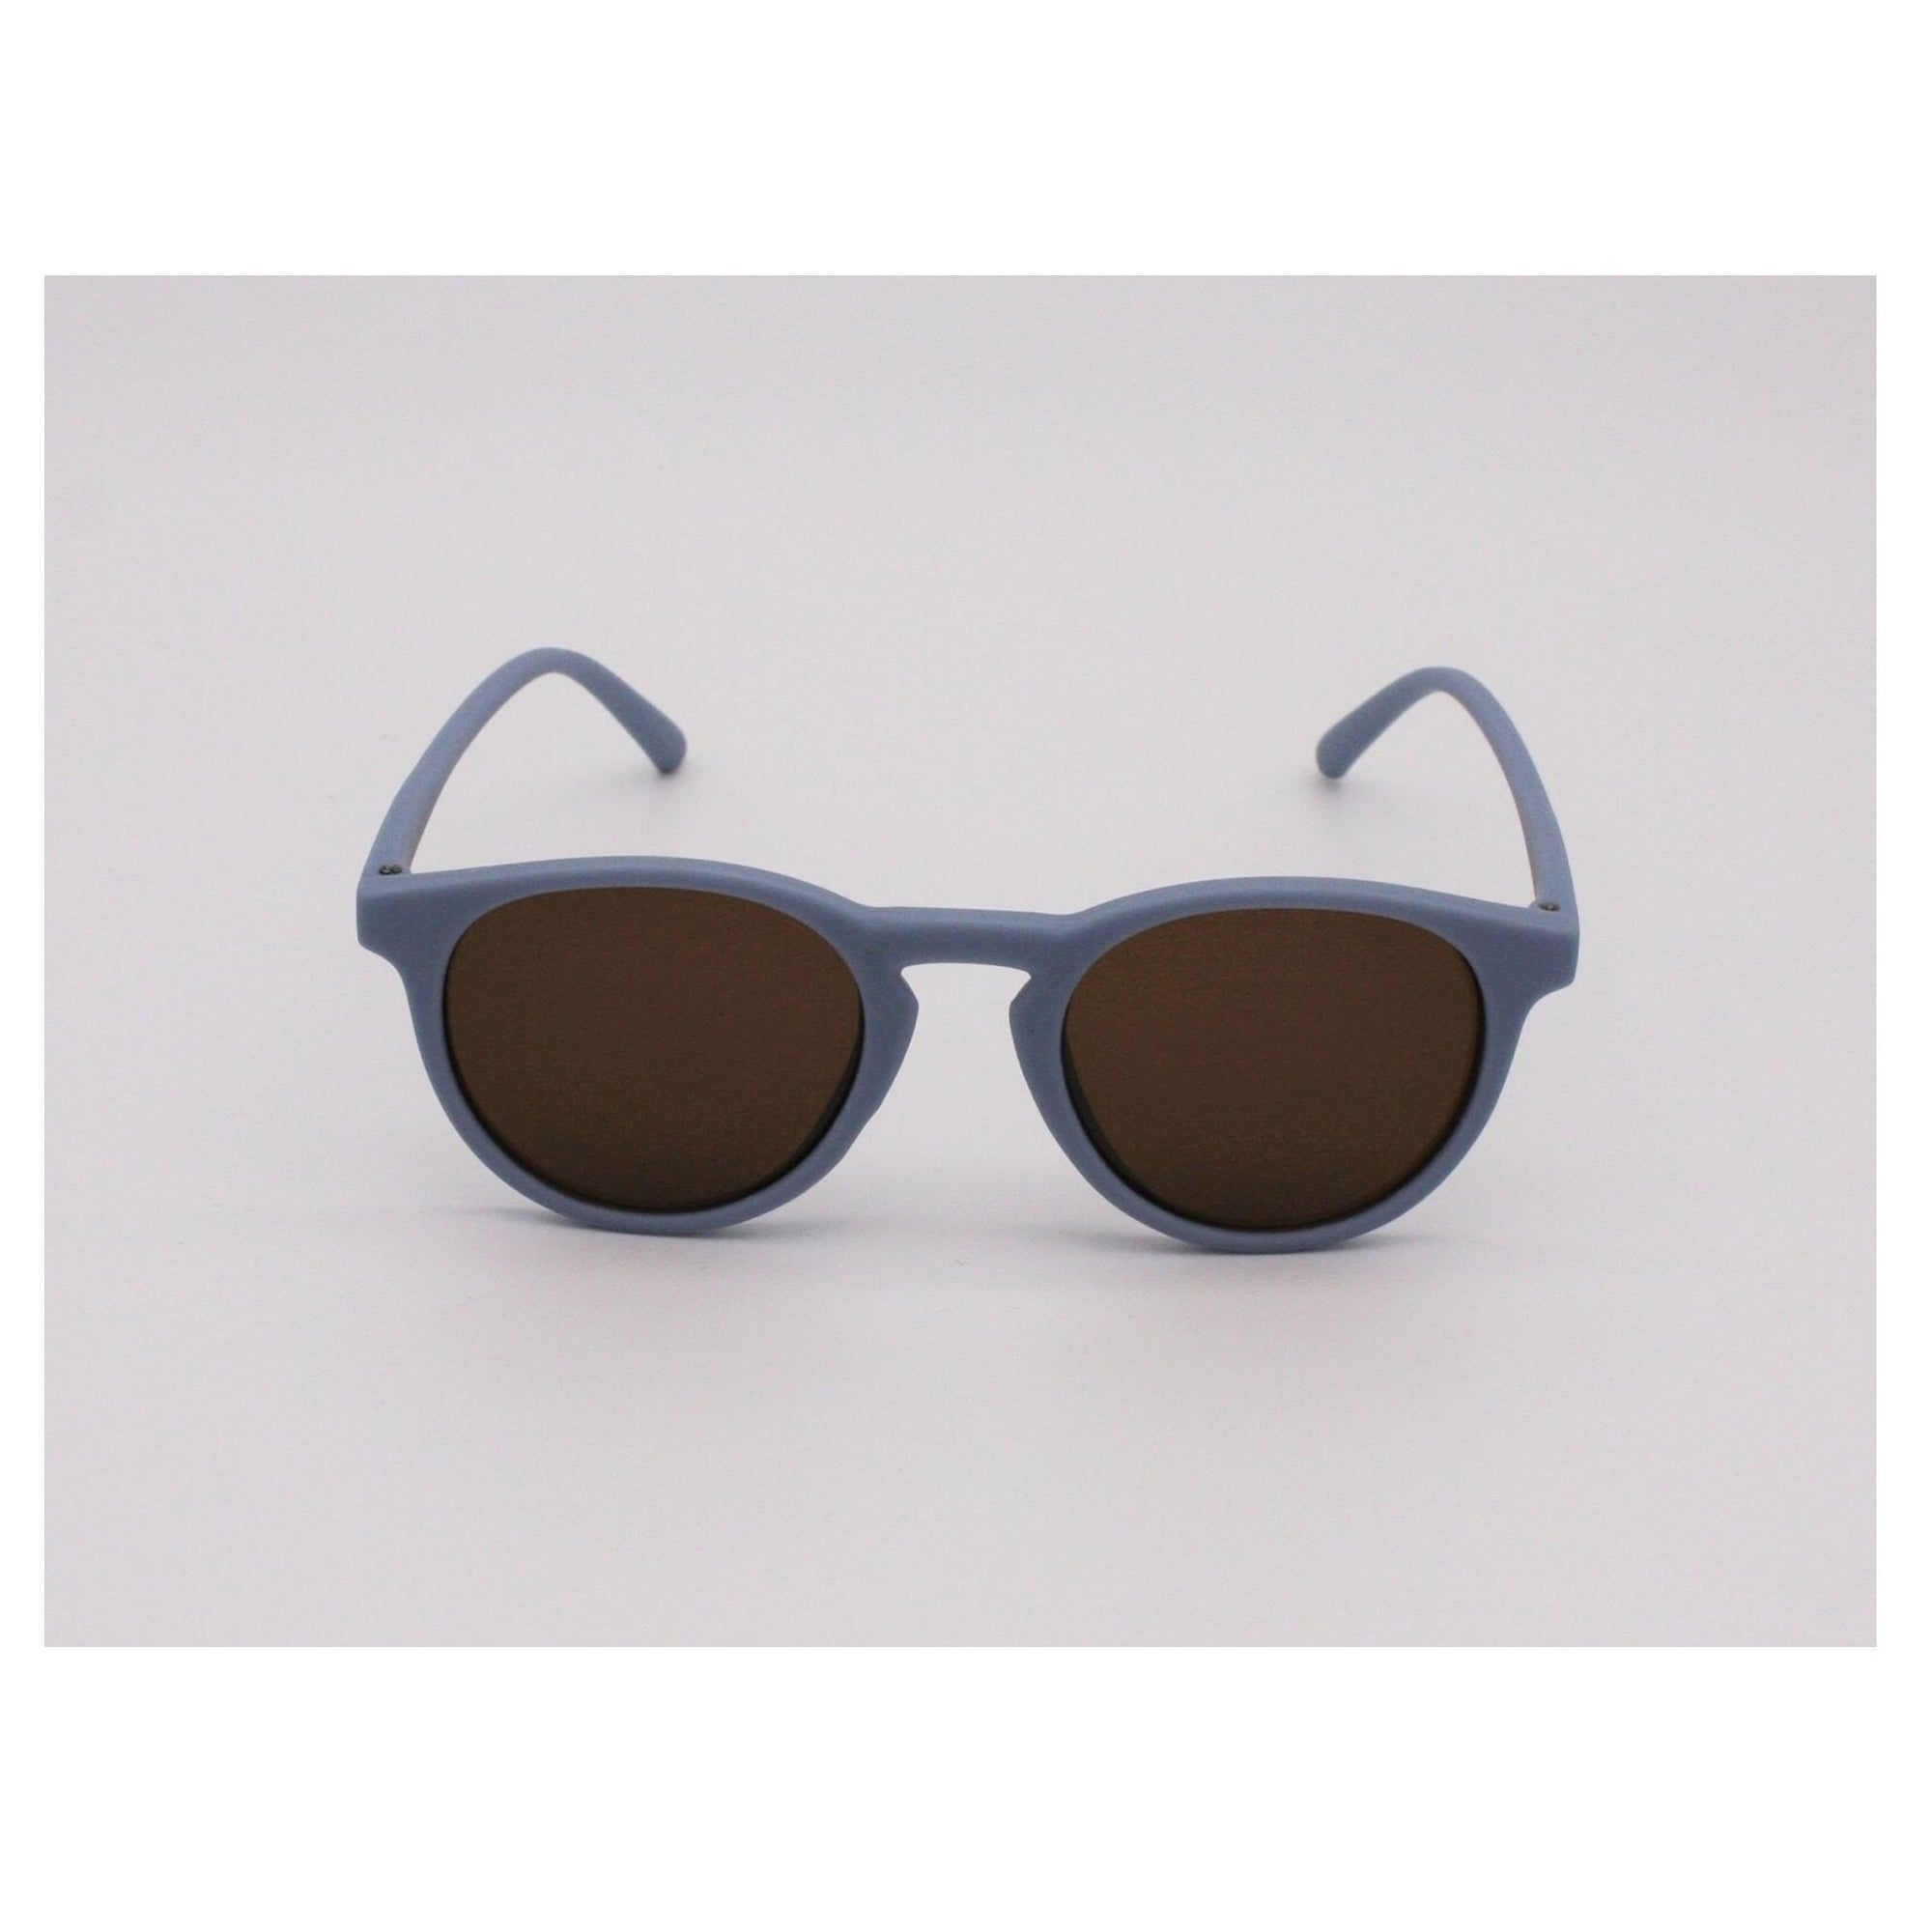 Elle Porte Children's Sunglasses - Ocean